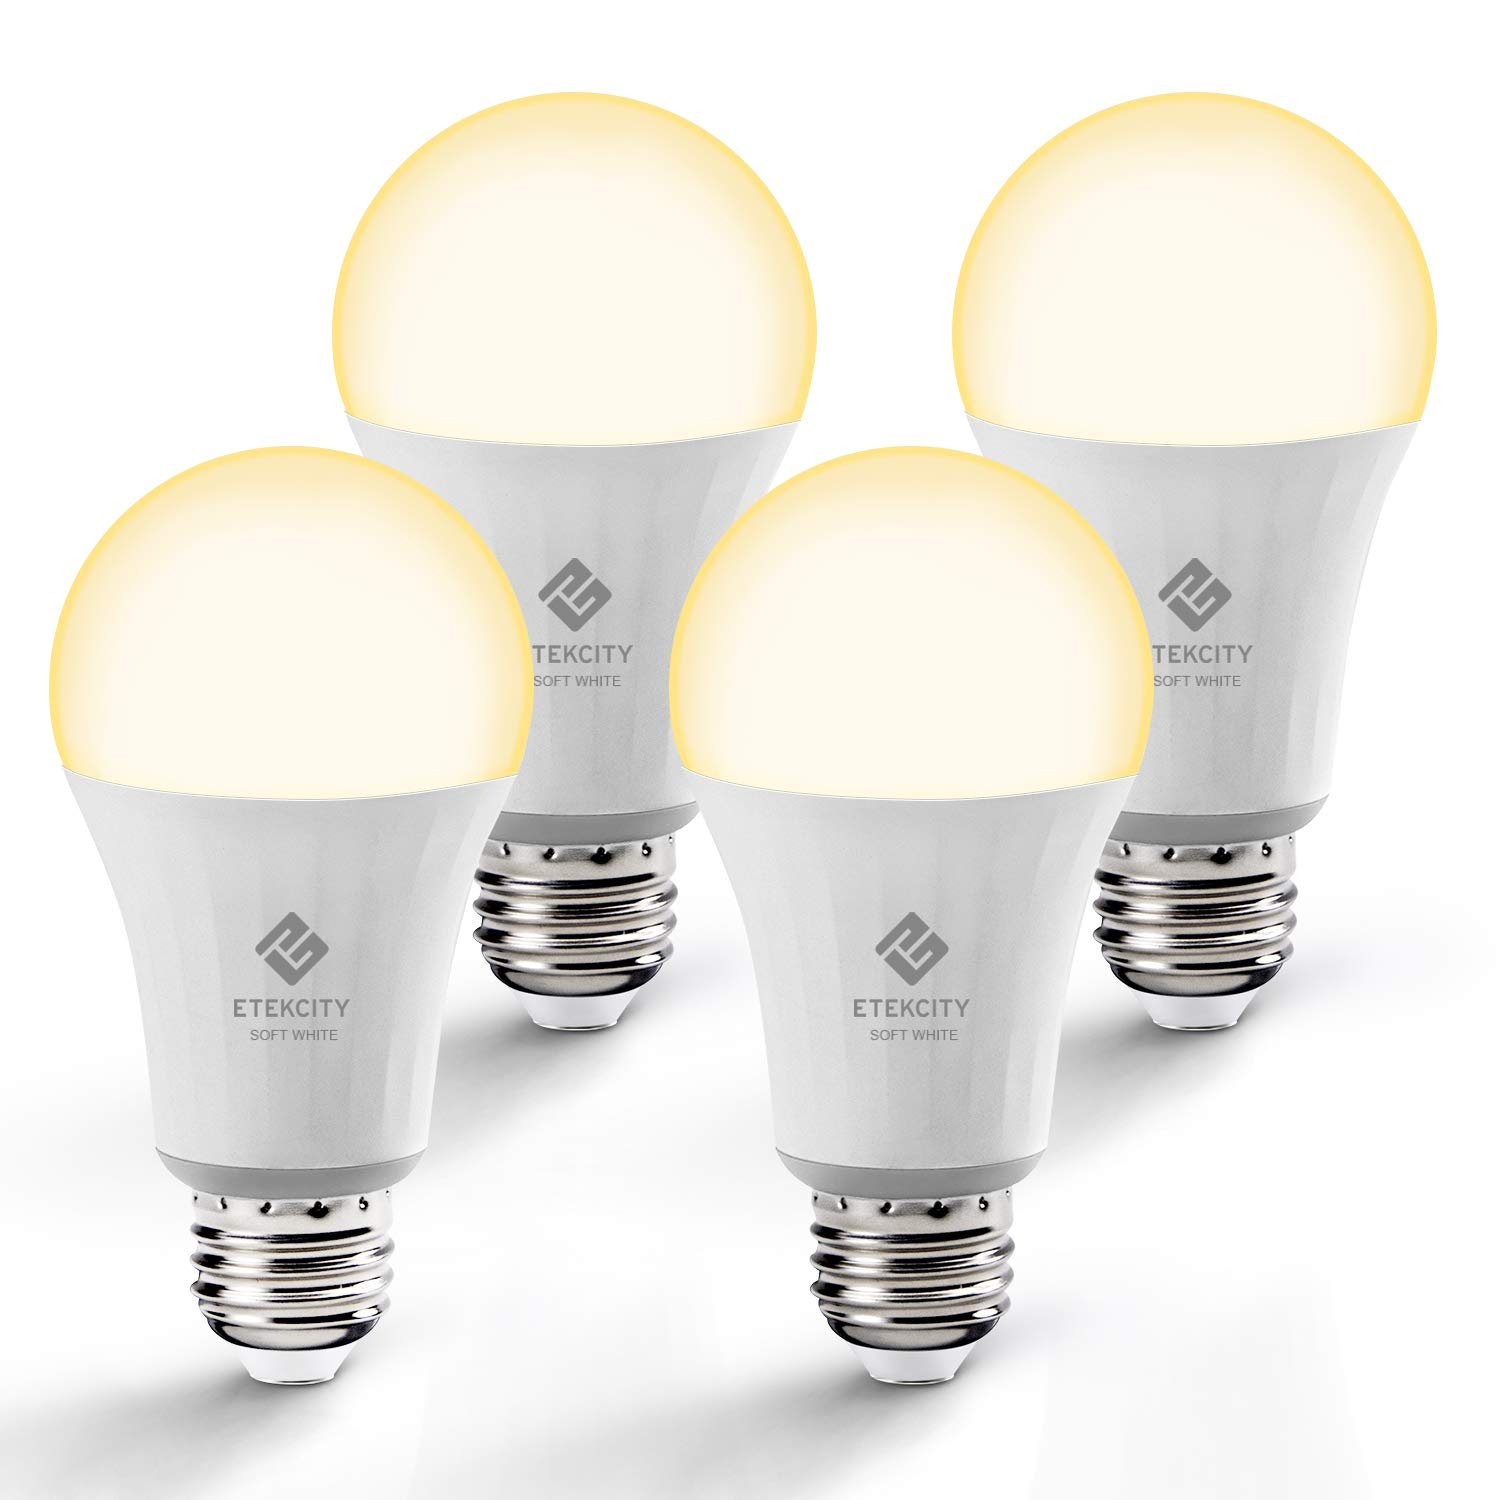 Etekcity Smart Light Bulb, WiFi Dimmable Soft White LED Bulbs, Work with Alexa, Google Home and IFTTT, Easy Setup, Schedule, A19 E26, 60W Equivalent, 806LM, 2700K, No Hub Required, UL Listed(4 Pack)